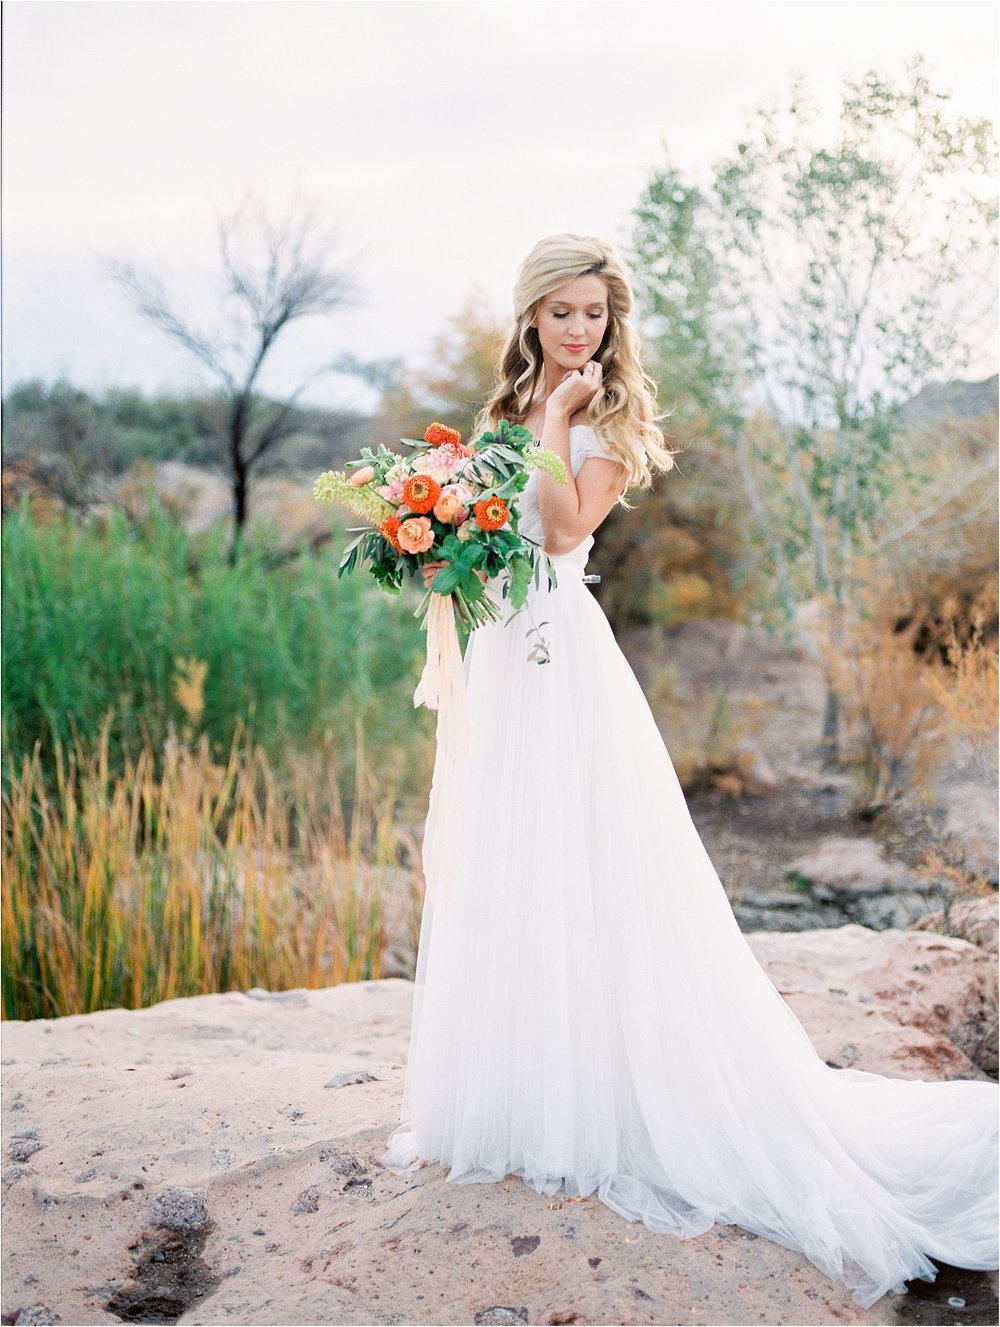 Sarah Jane Photography Film Hybrid Scottsdale Phoenix Arizona Destination Wedding Photographer Ally Ryan Desert_0013.jpg